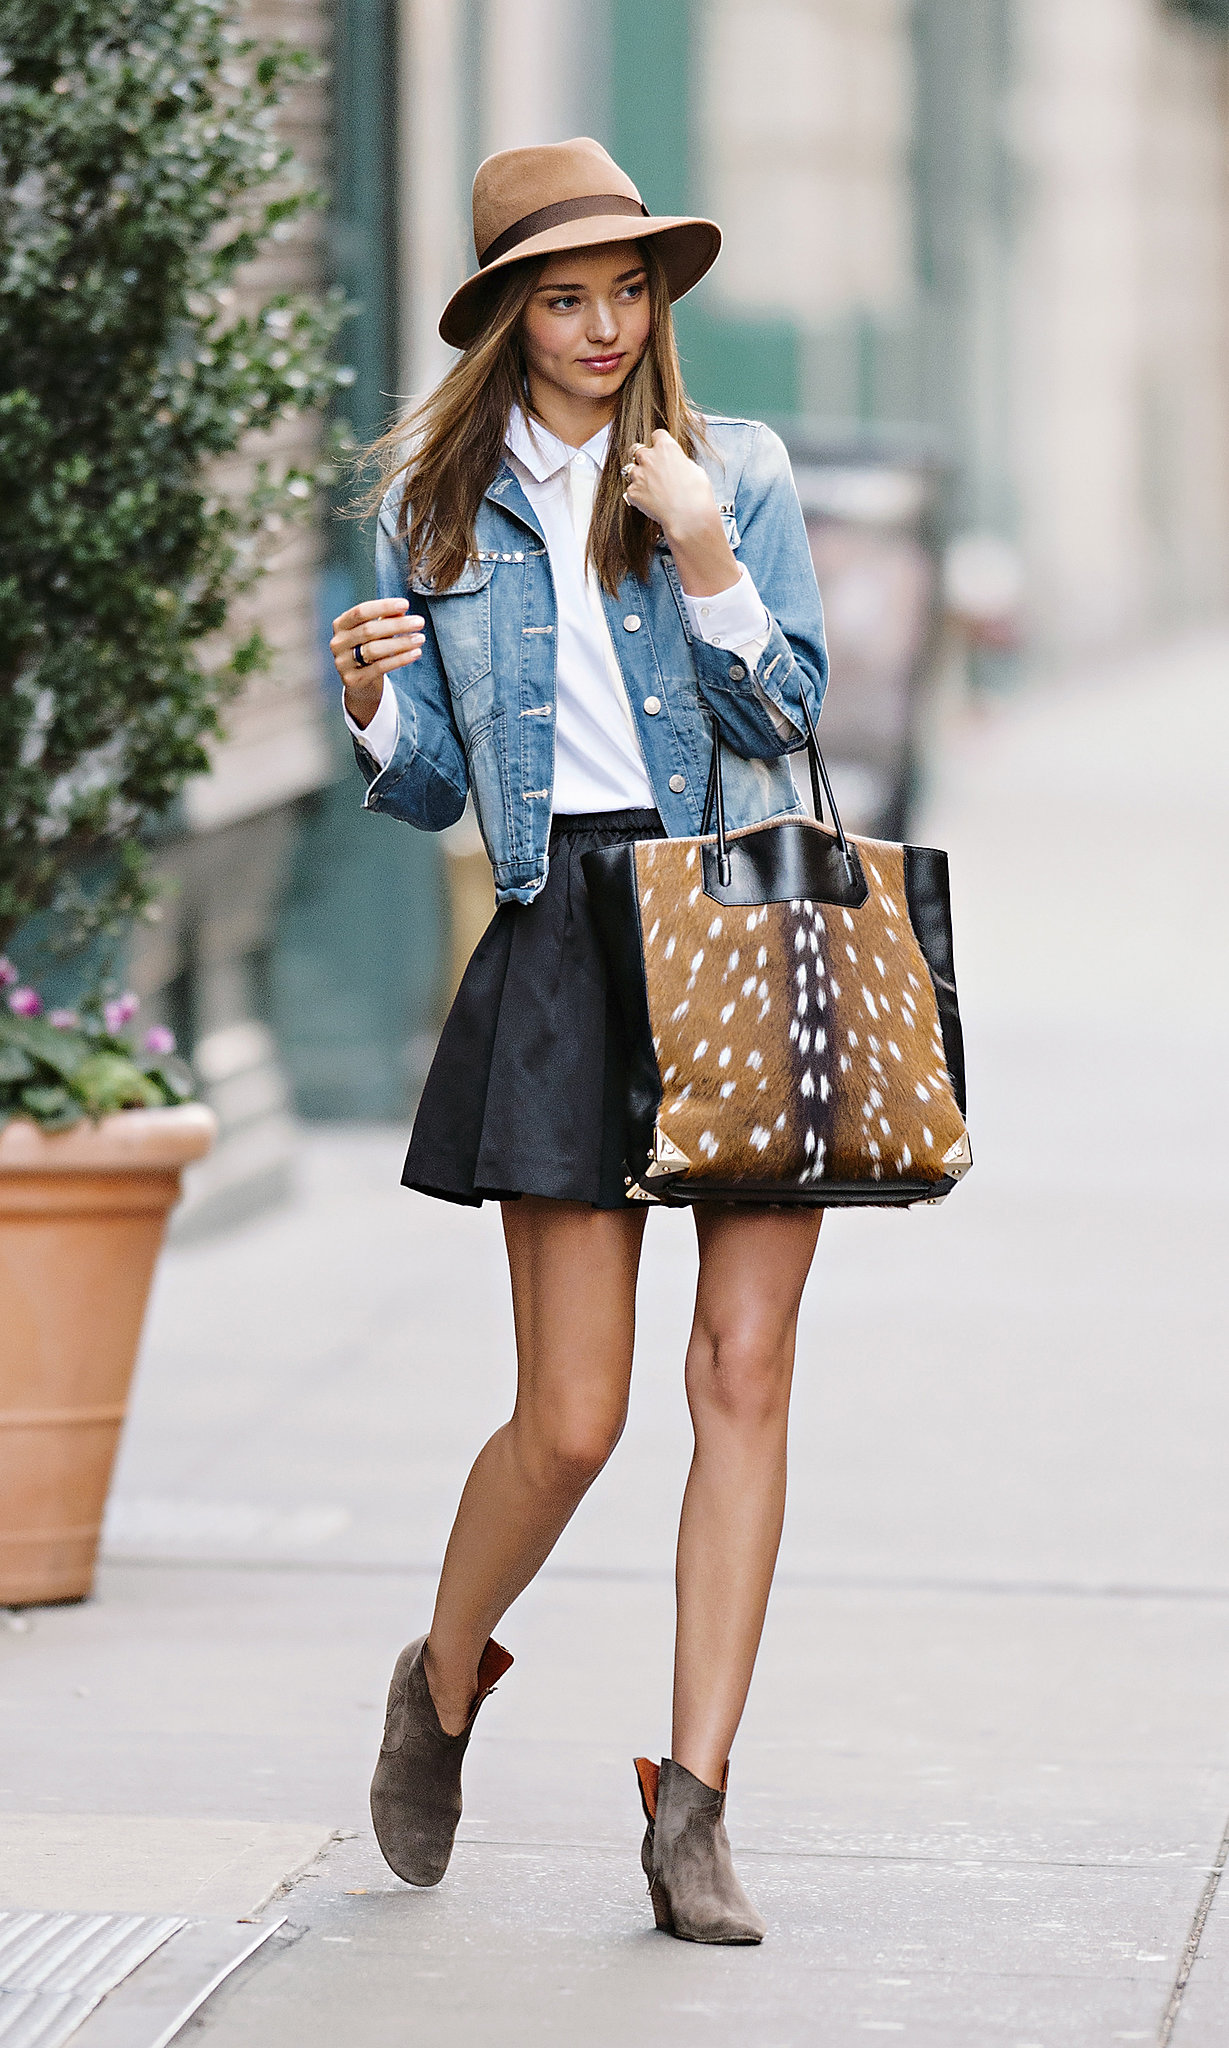 Add A Denim Jacket Miranda Kerr 39 S Spring Weekend Style Guide Popsugar Fashion Australia